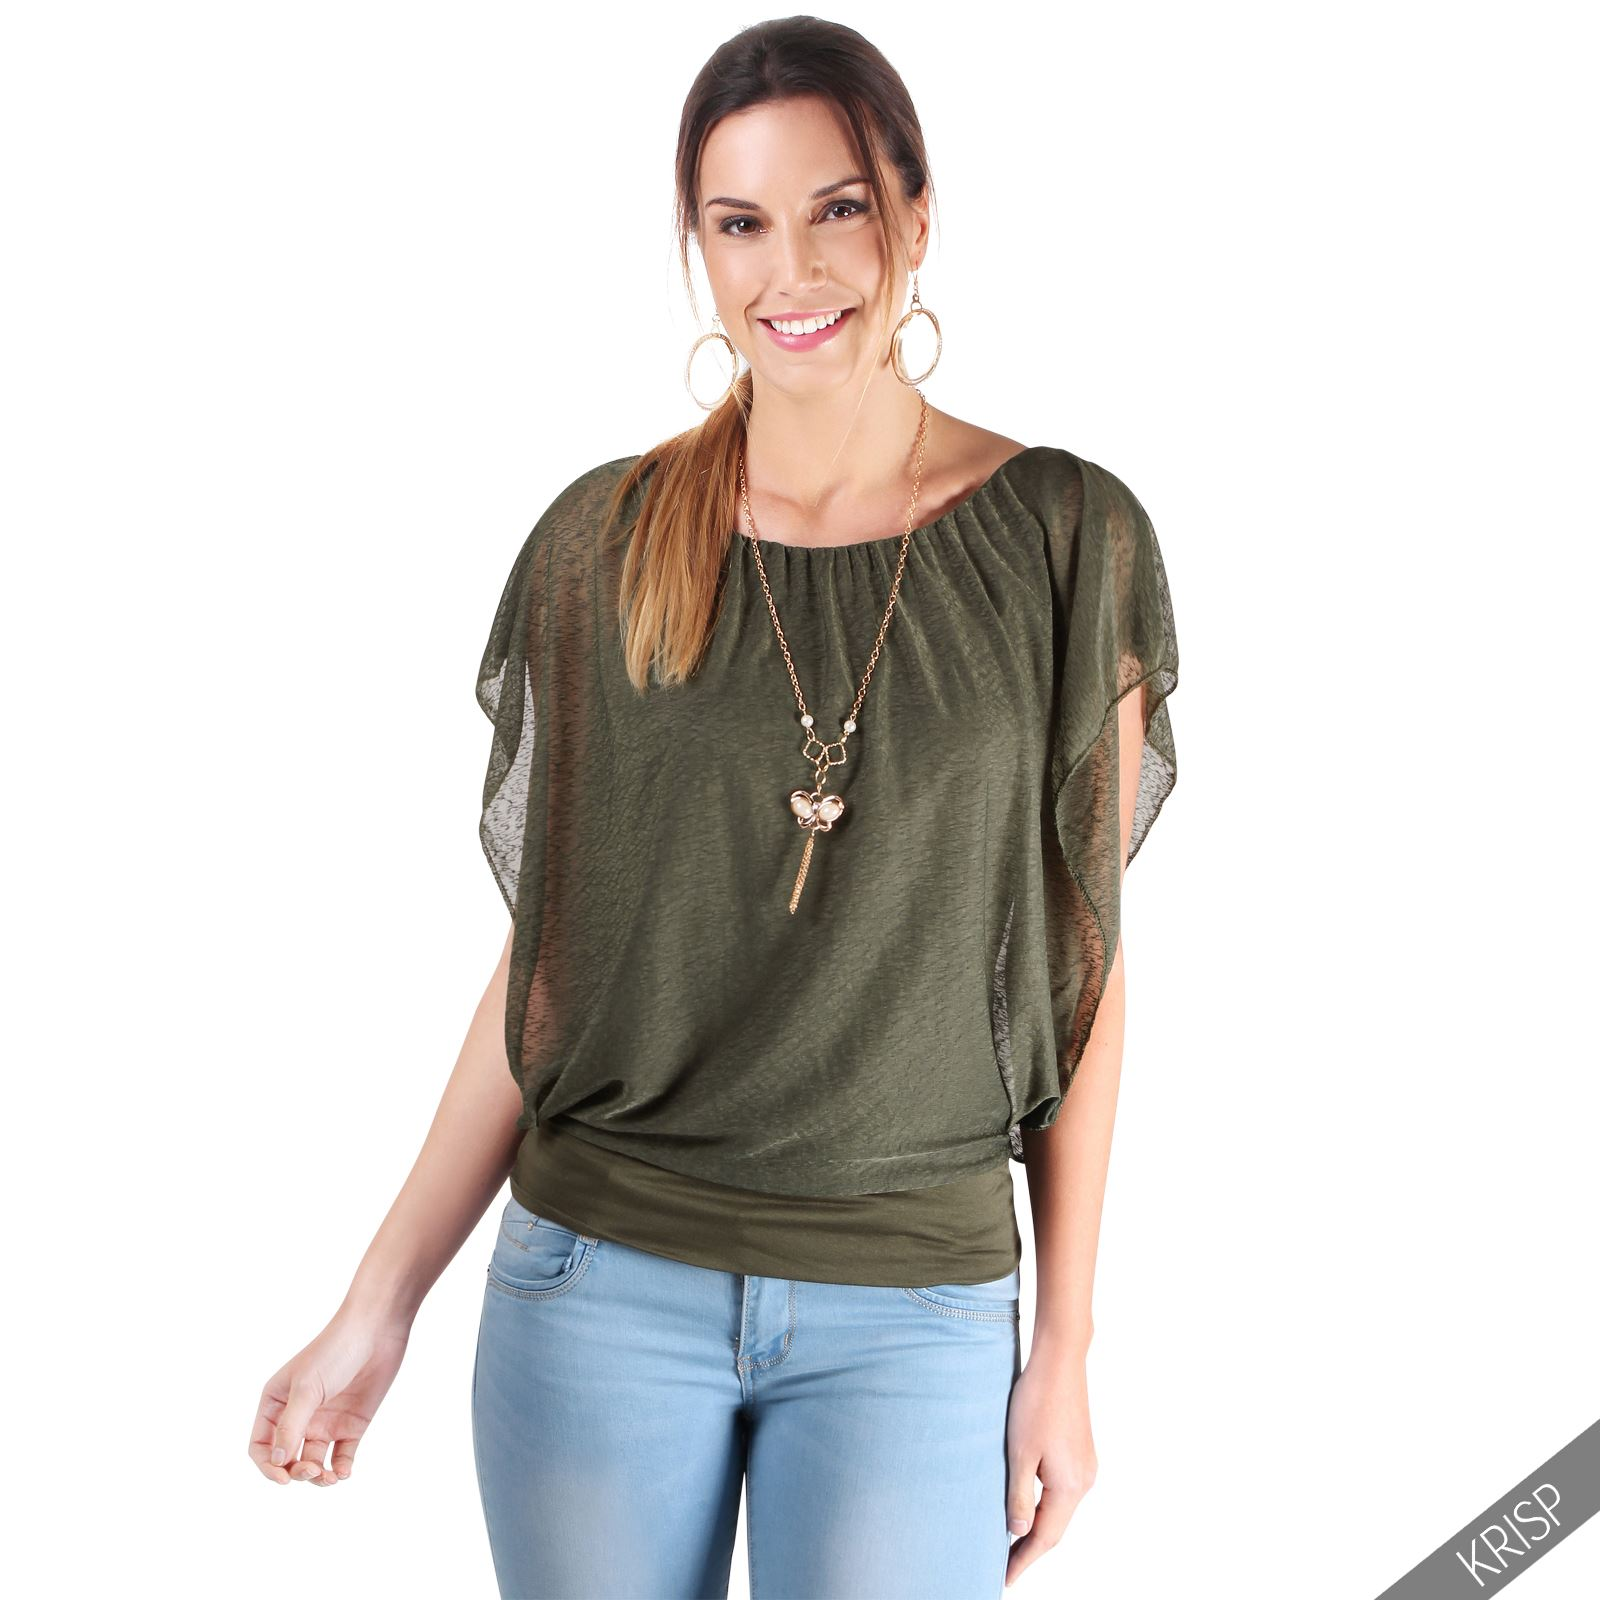 A complete assortment of Women's Long Sleeve Tops is in stock at hereufilbk.gq! Shipping is free on orders over $99!